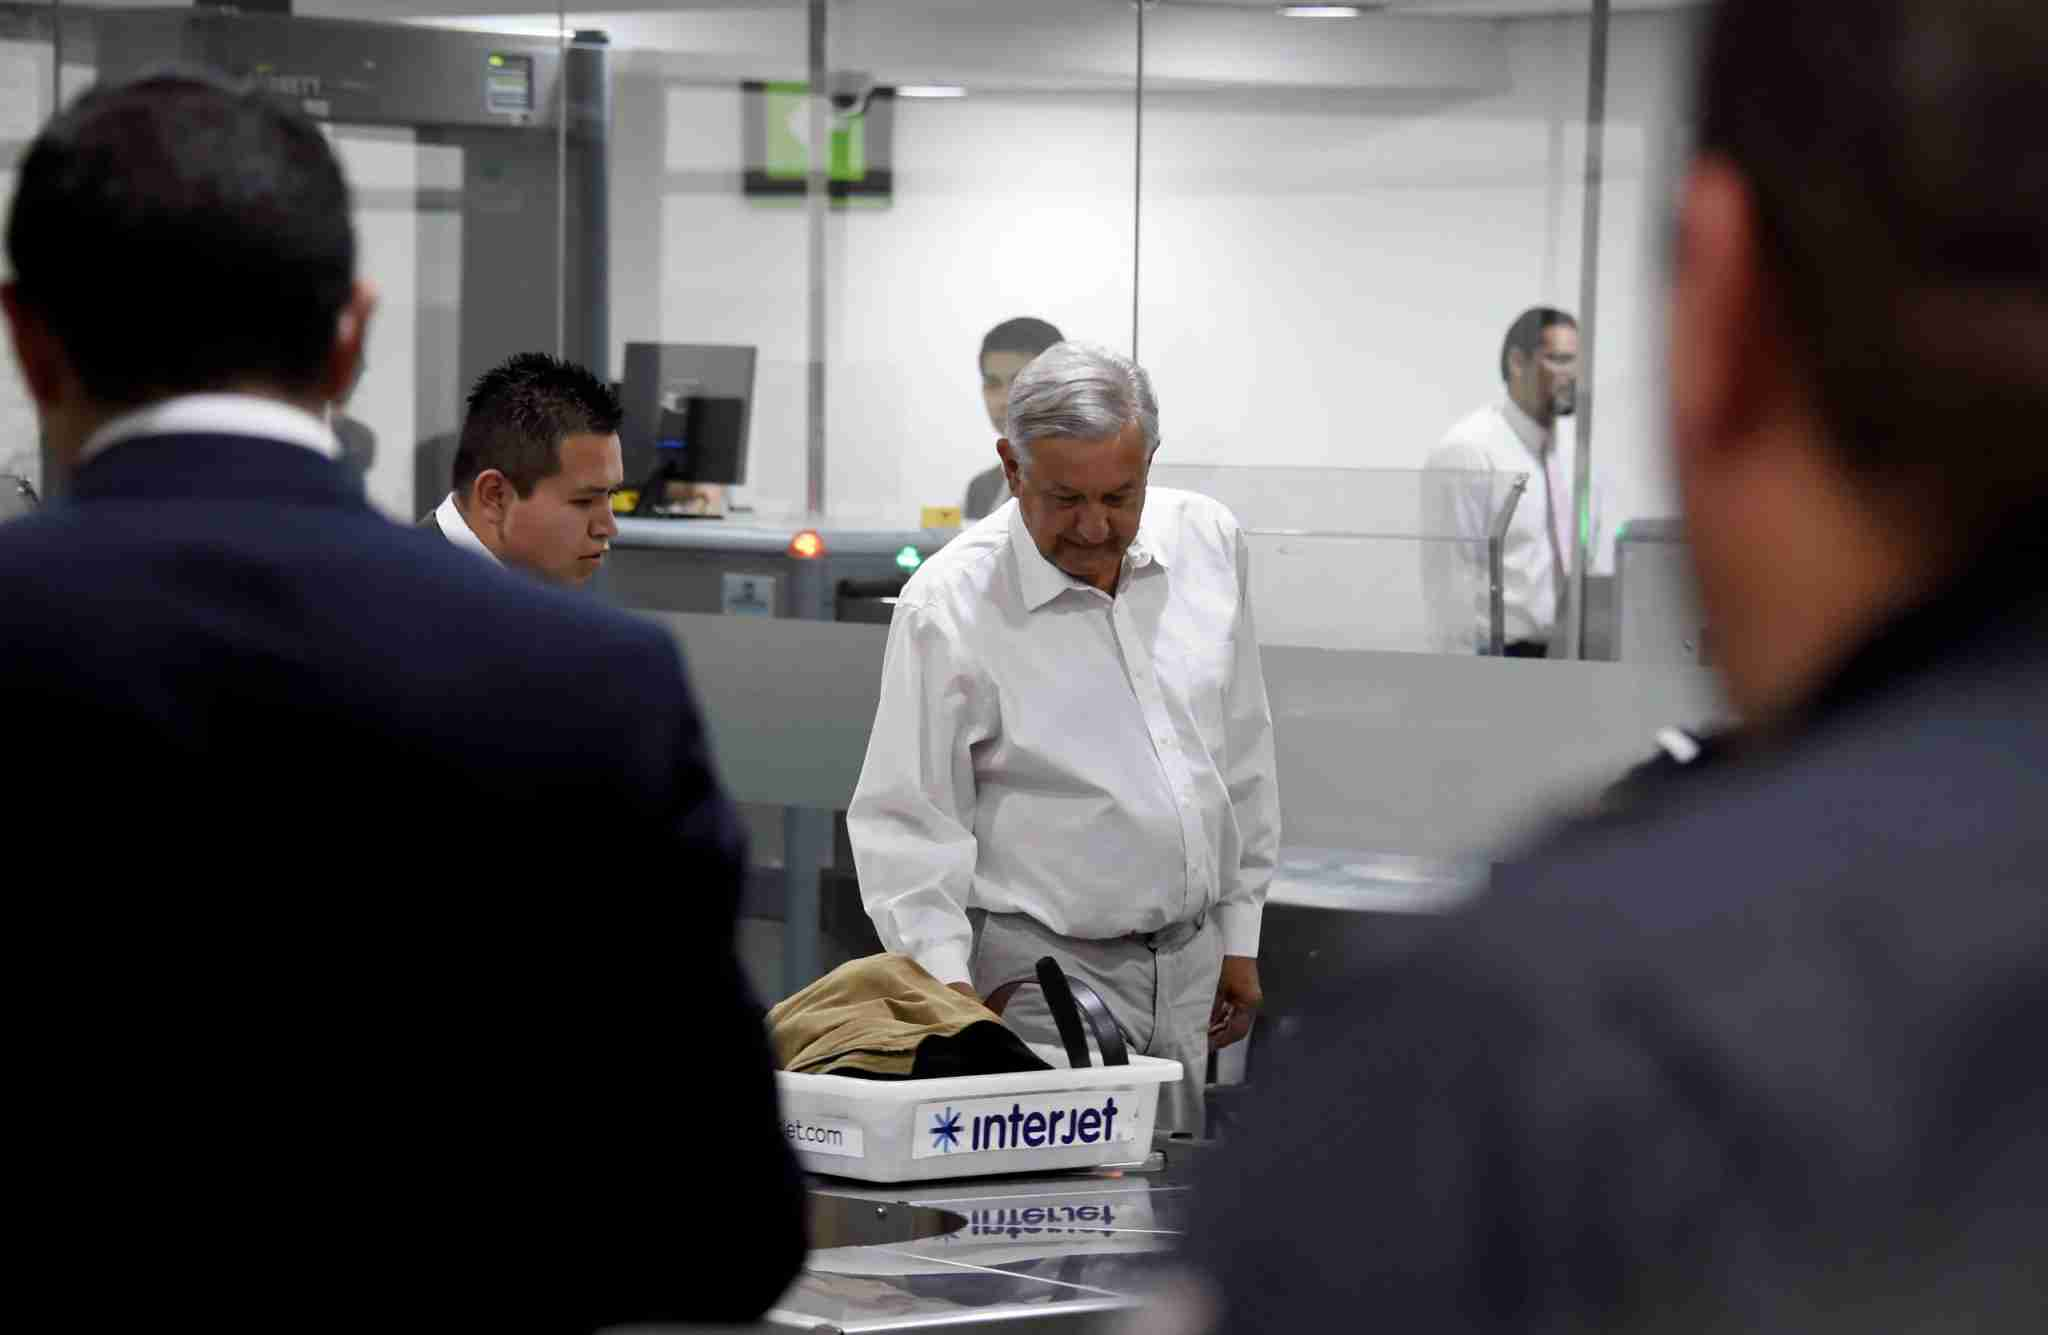 Mexican President Andres Manuel Lopez Obrador goes through the security area before boarding a commercial flight at Mexico City